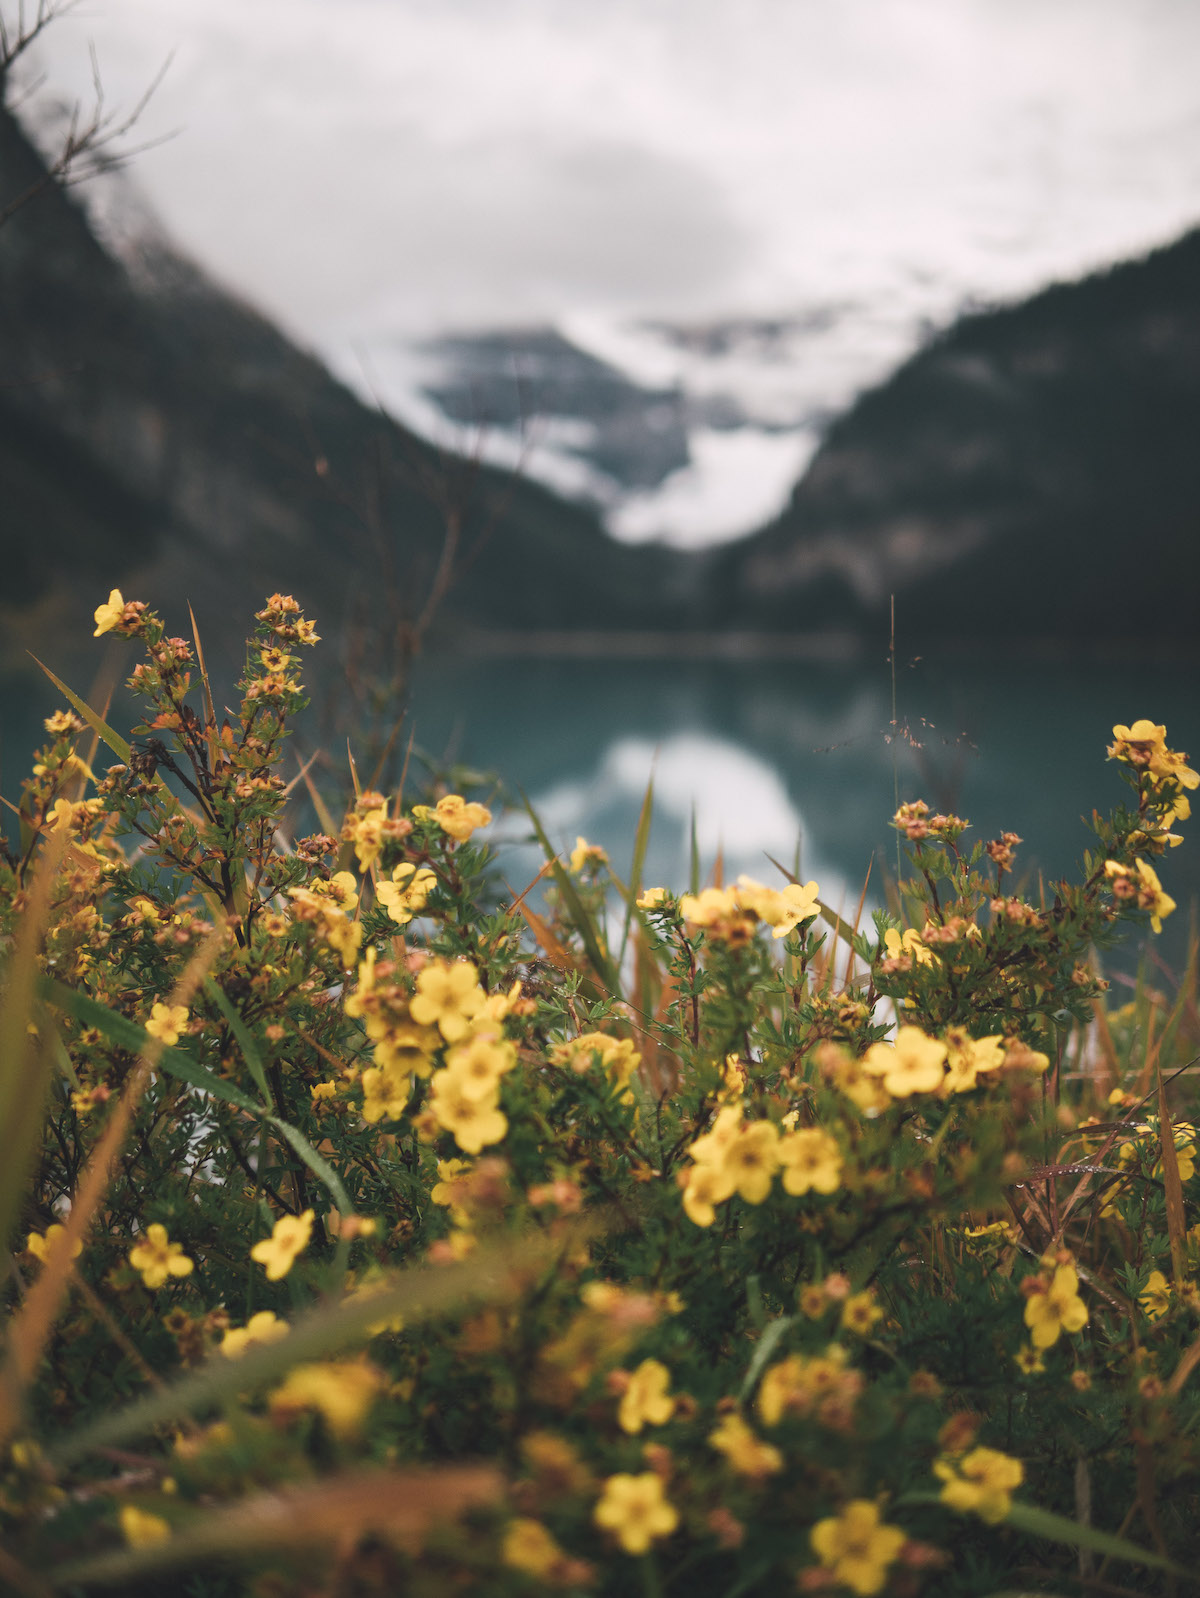 Yellow wildflowers in focus with blurred mountain backdrop